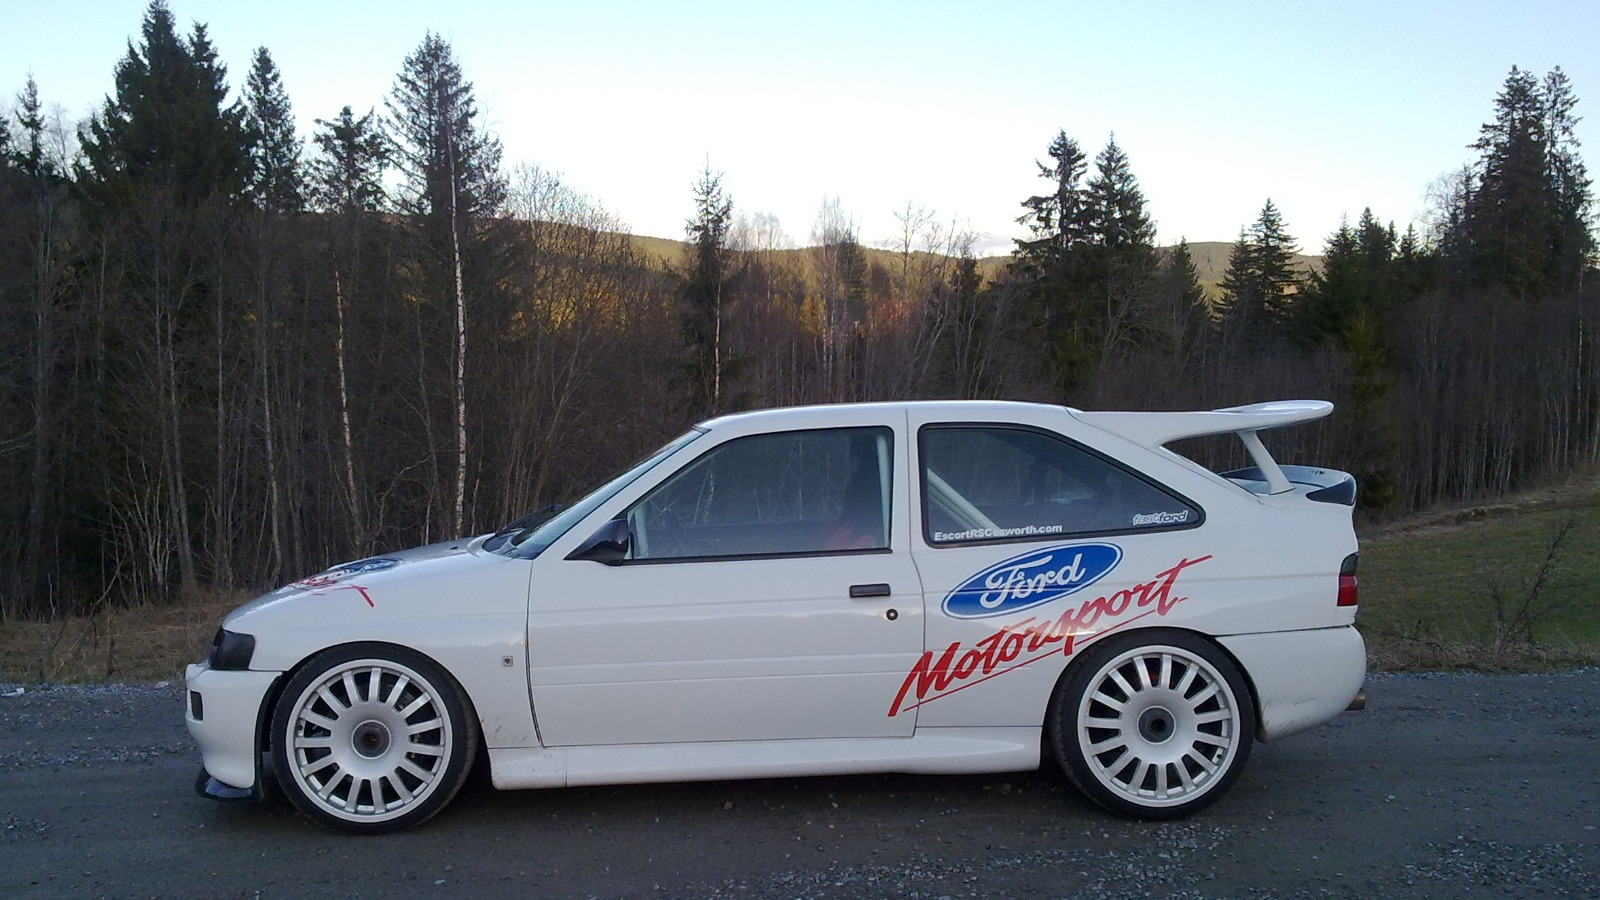 Ukas bil: 1993 Ford Escort RS Cosworth Motorsport